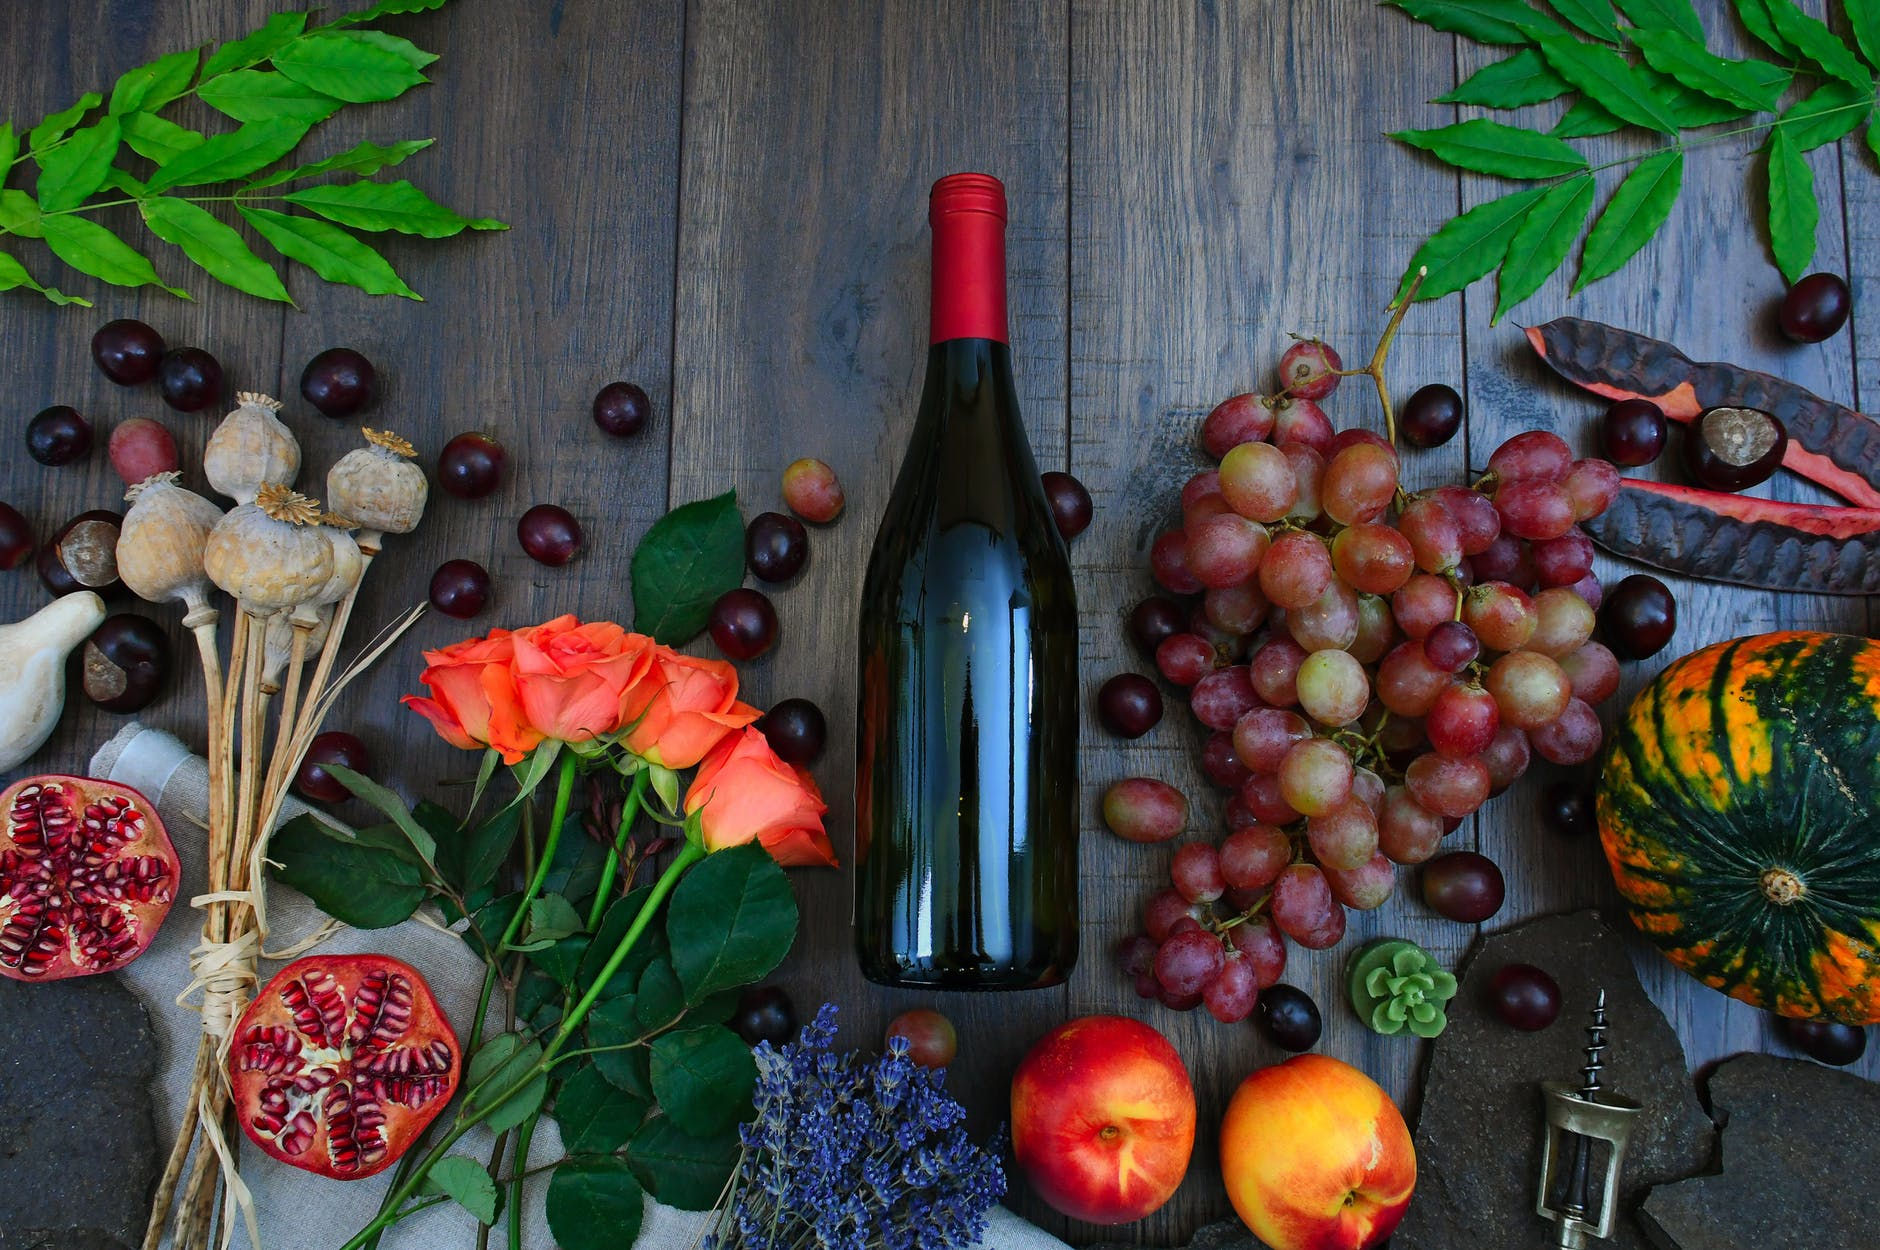 wine bottle beside grapes roses and several fruits on brown wooden surface